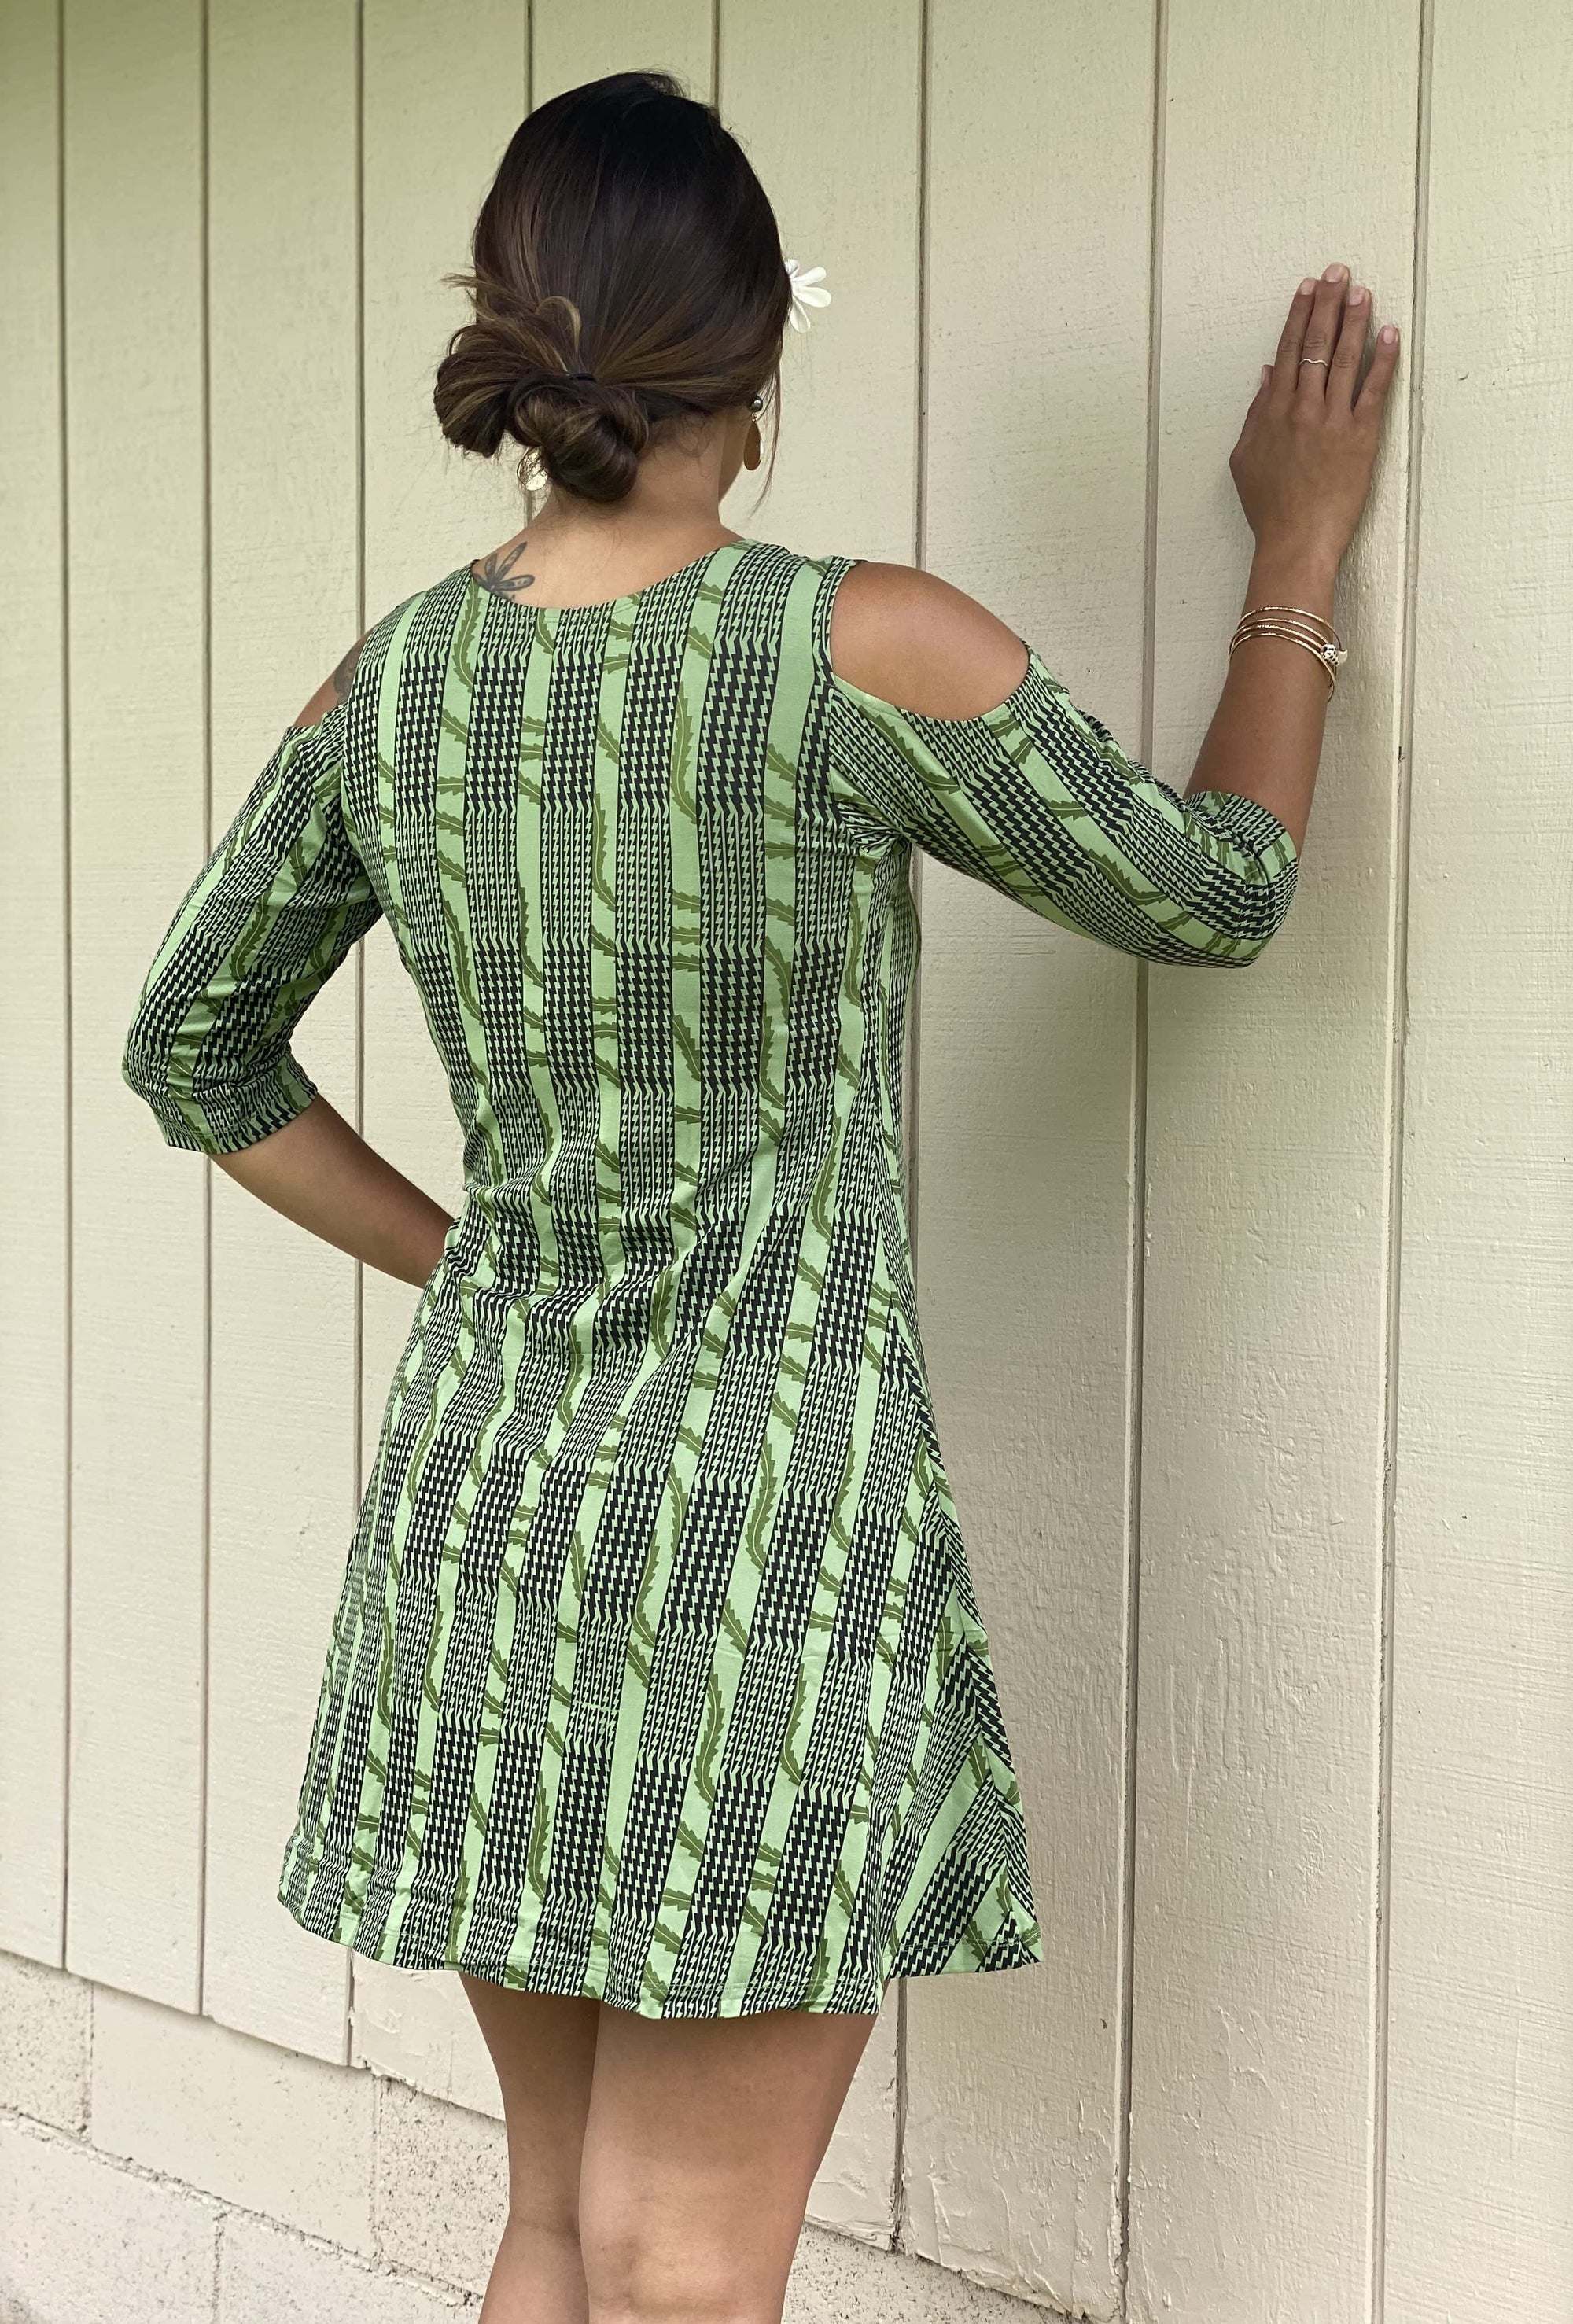 Lalamilo Dress: Navy Green